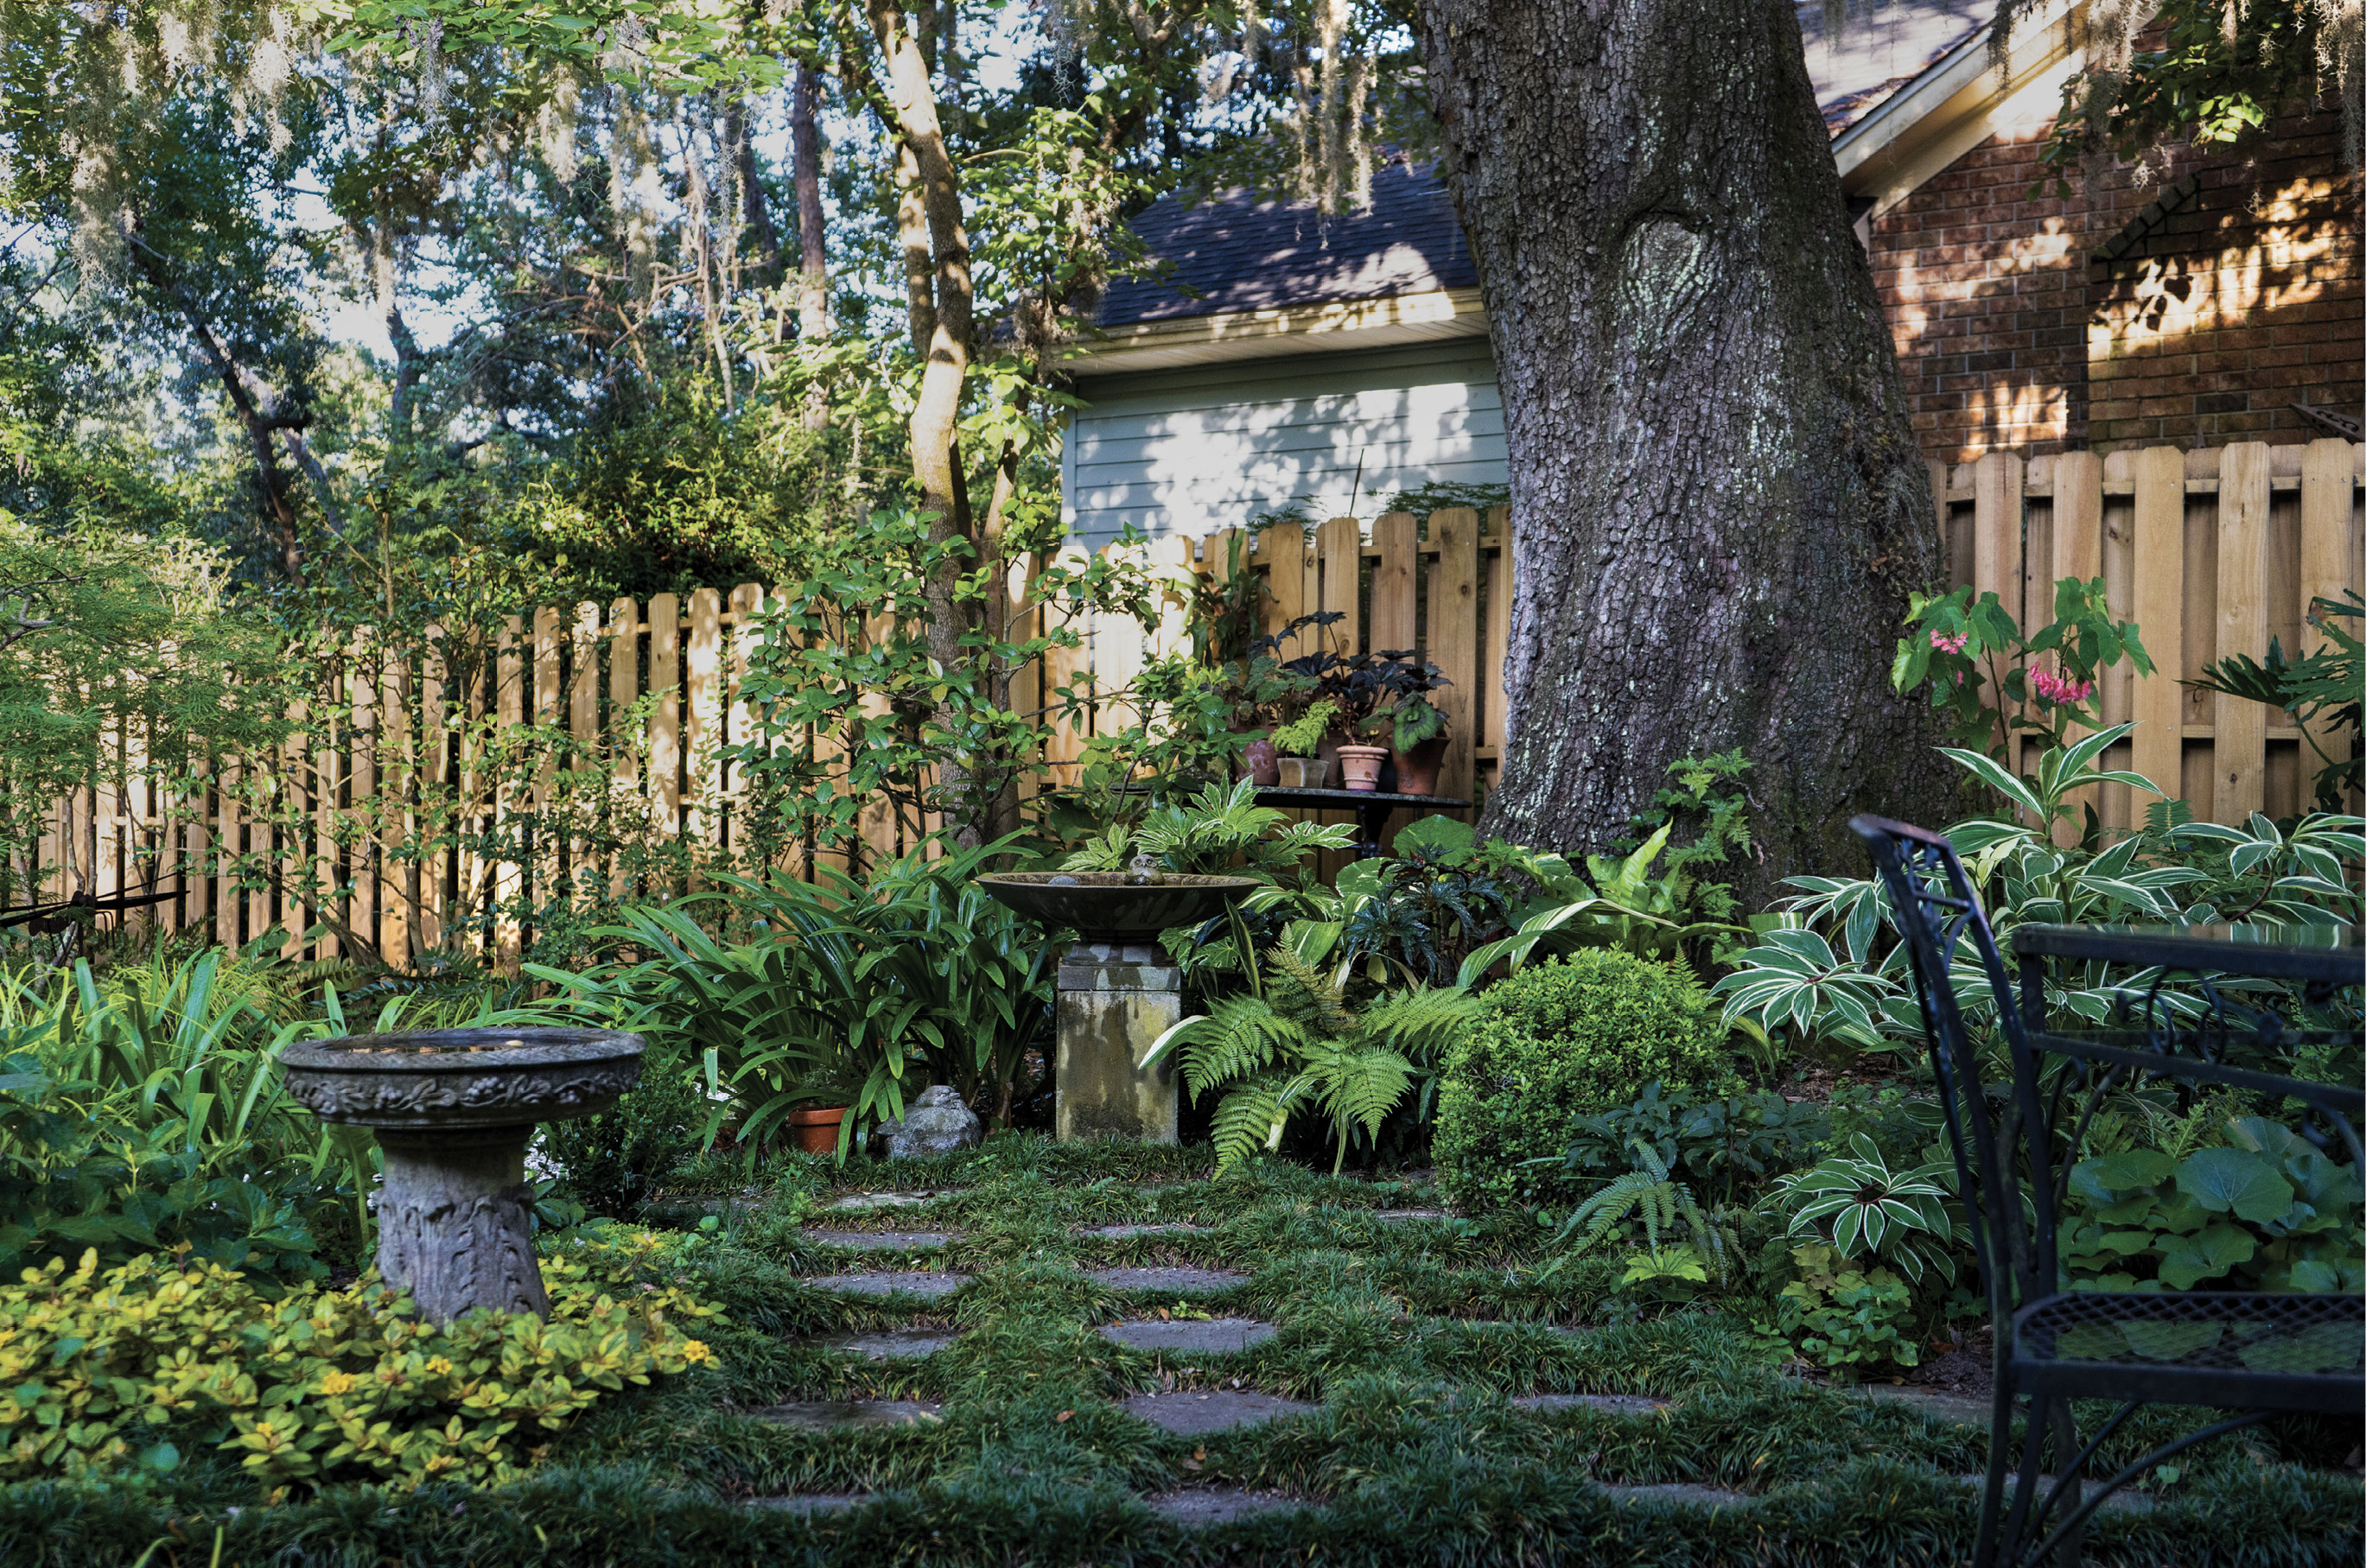 Creature Comforts: It took Rivers years to finish planting dwarf mondo grass amid the stepping stones laid in several areas throughout the back garden. Here, the inviting combination draws one from the patio into a verdant nook ending in a birdbath.